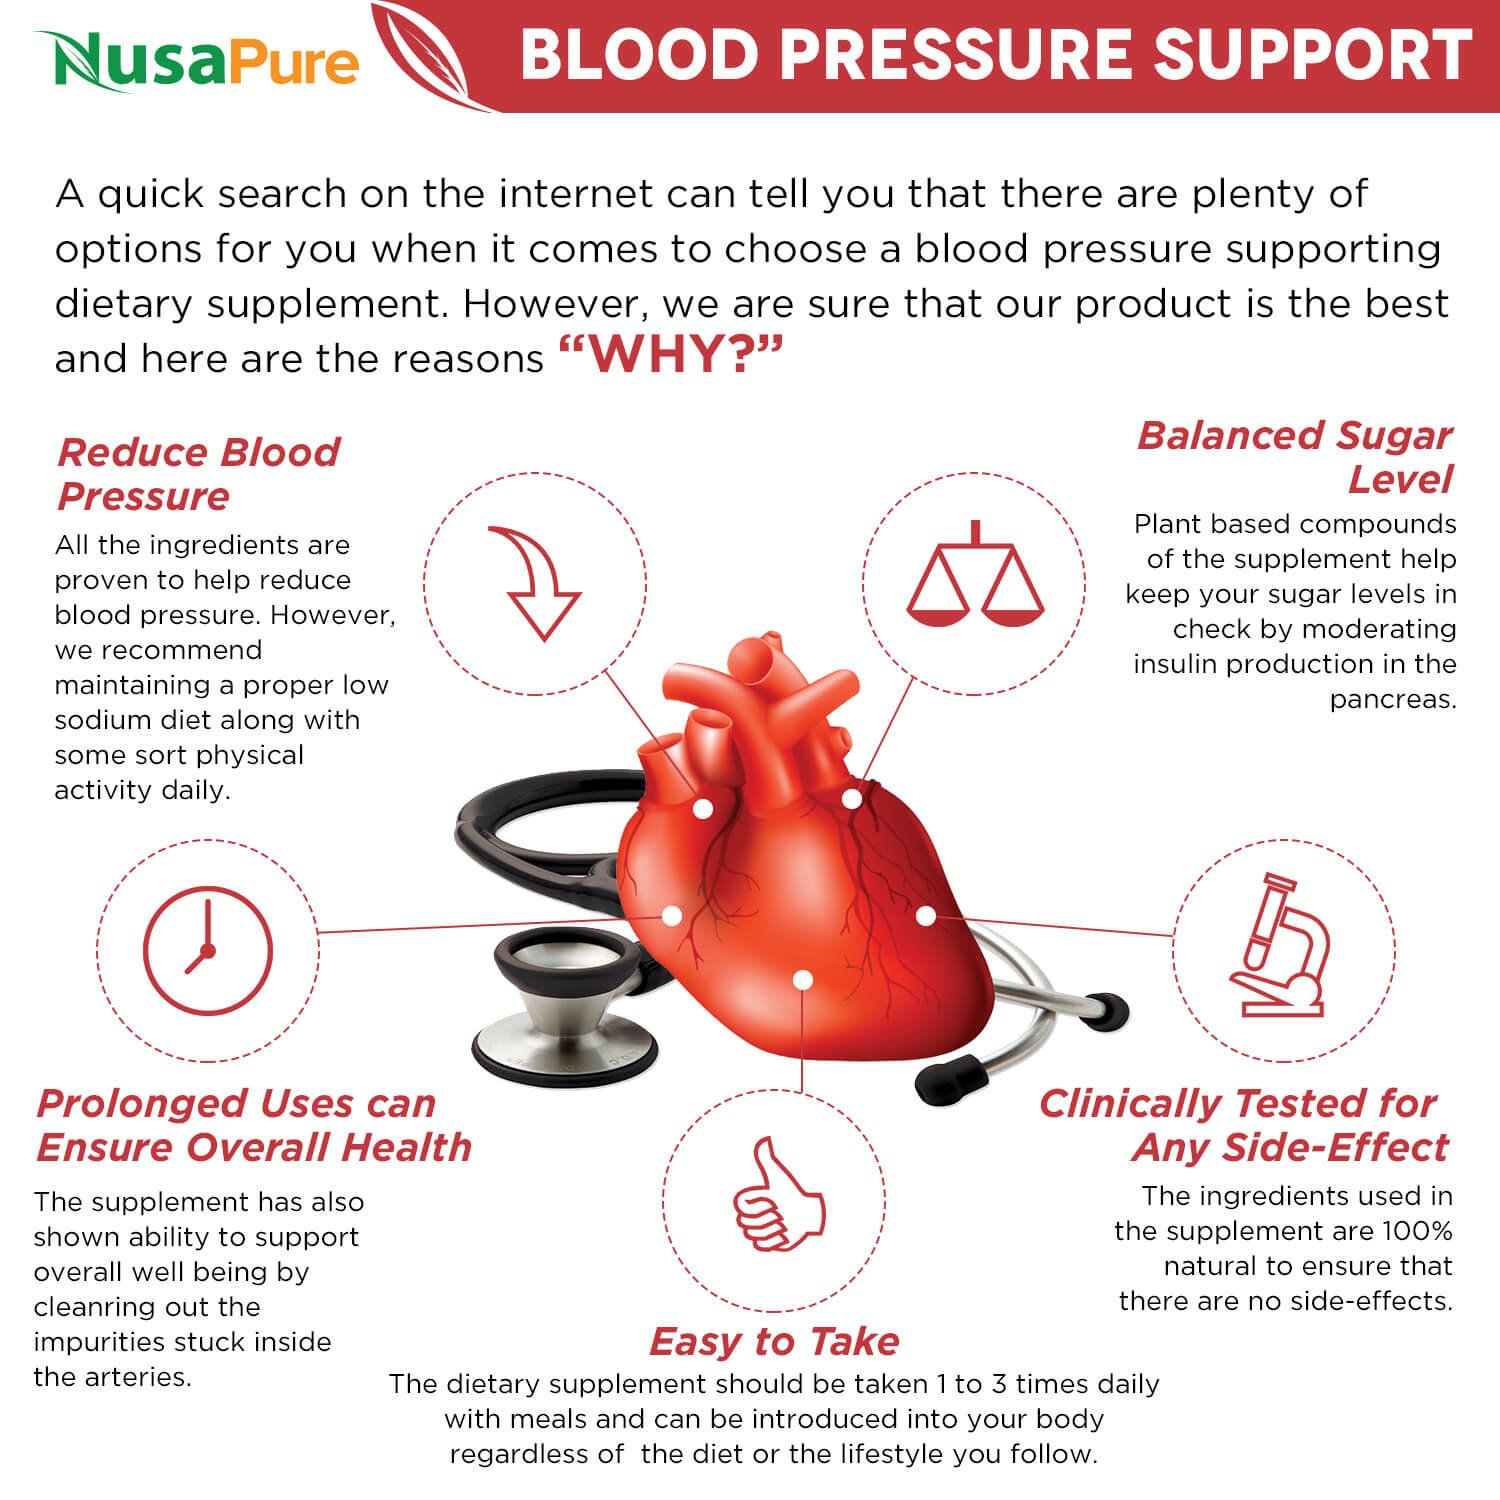 Amazon.com: BEST Blood Pressure Supplement (NON-GMO & Gluten Free) 90 CAPS  : Blood Pressure Support with Hawthorn Berry and Uva Ursi: Herbs and  Vitamins for ...